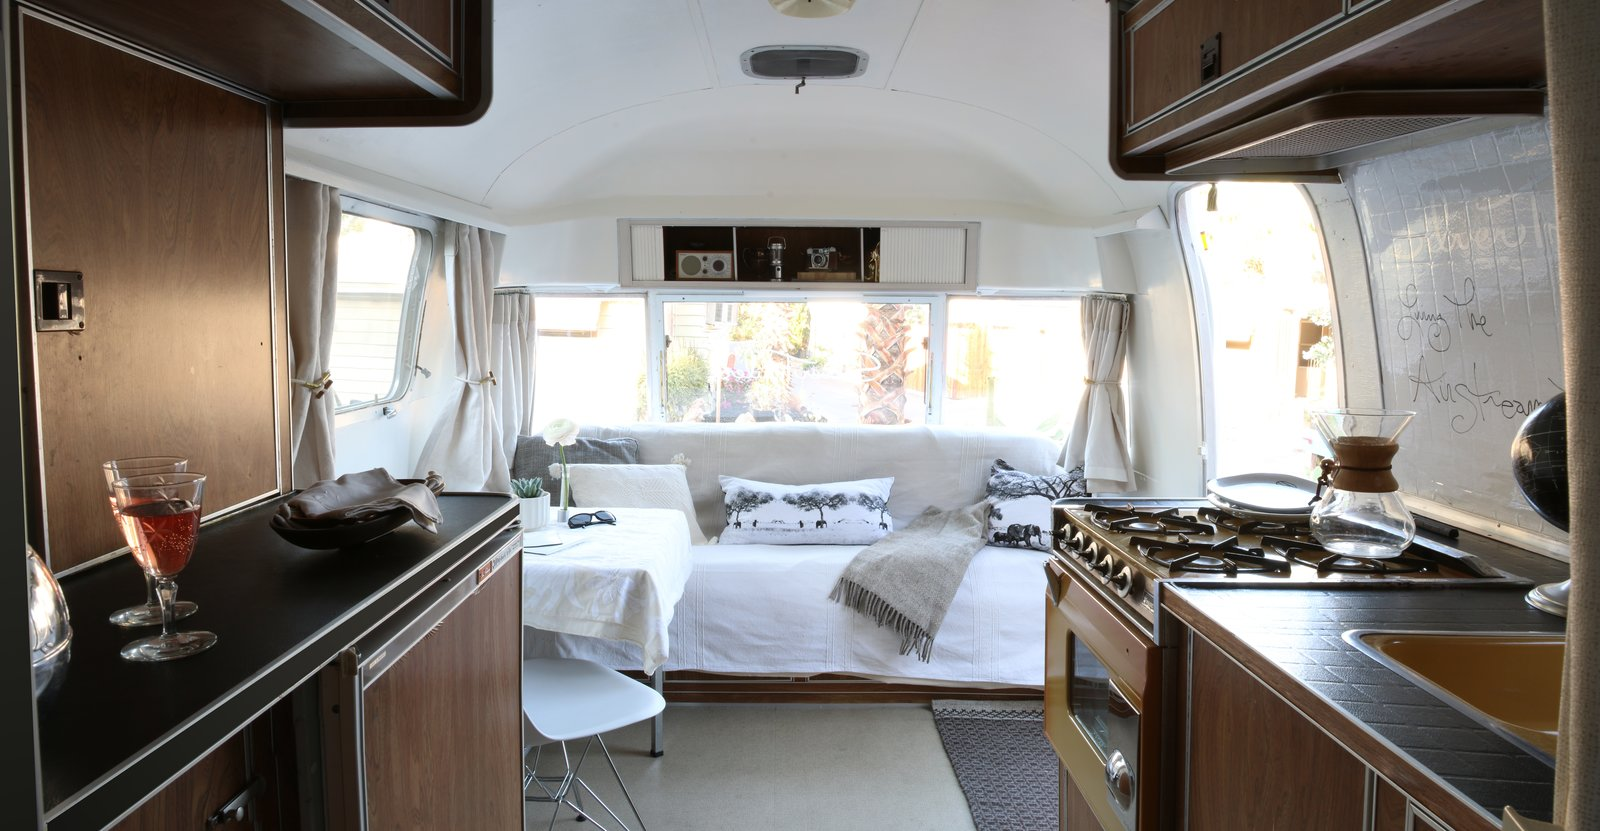 photo 16 of 20 in live the airstream life vicariously with a new